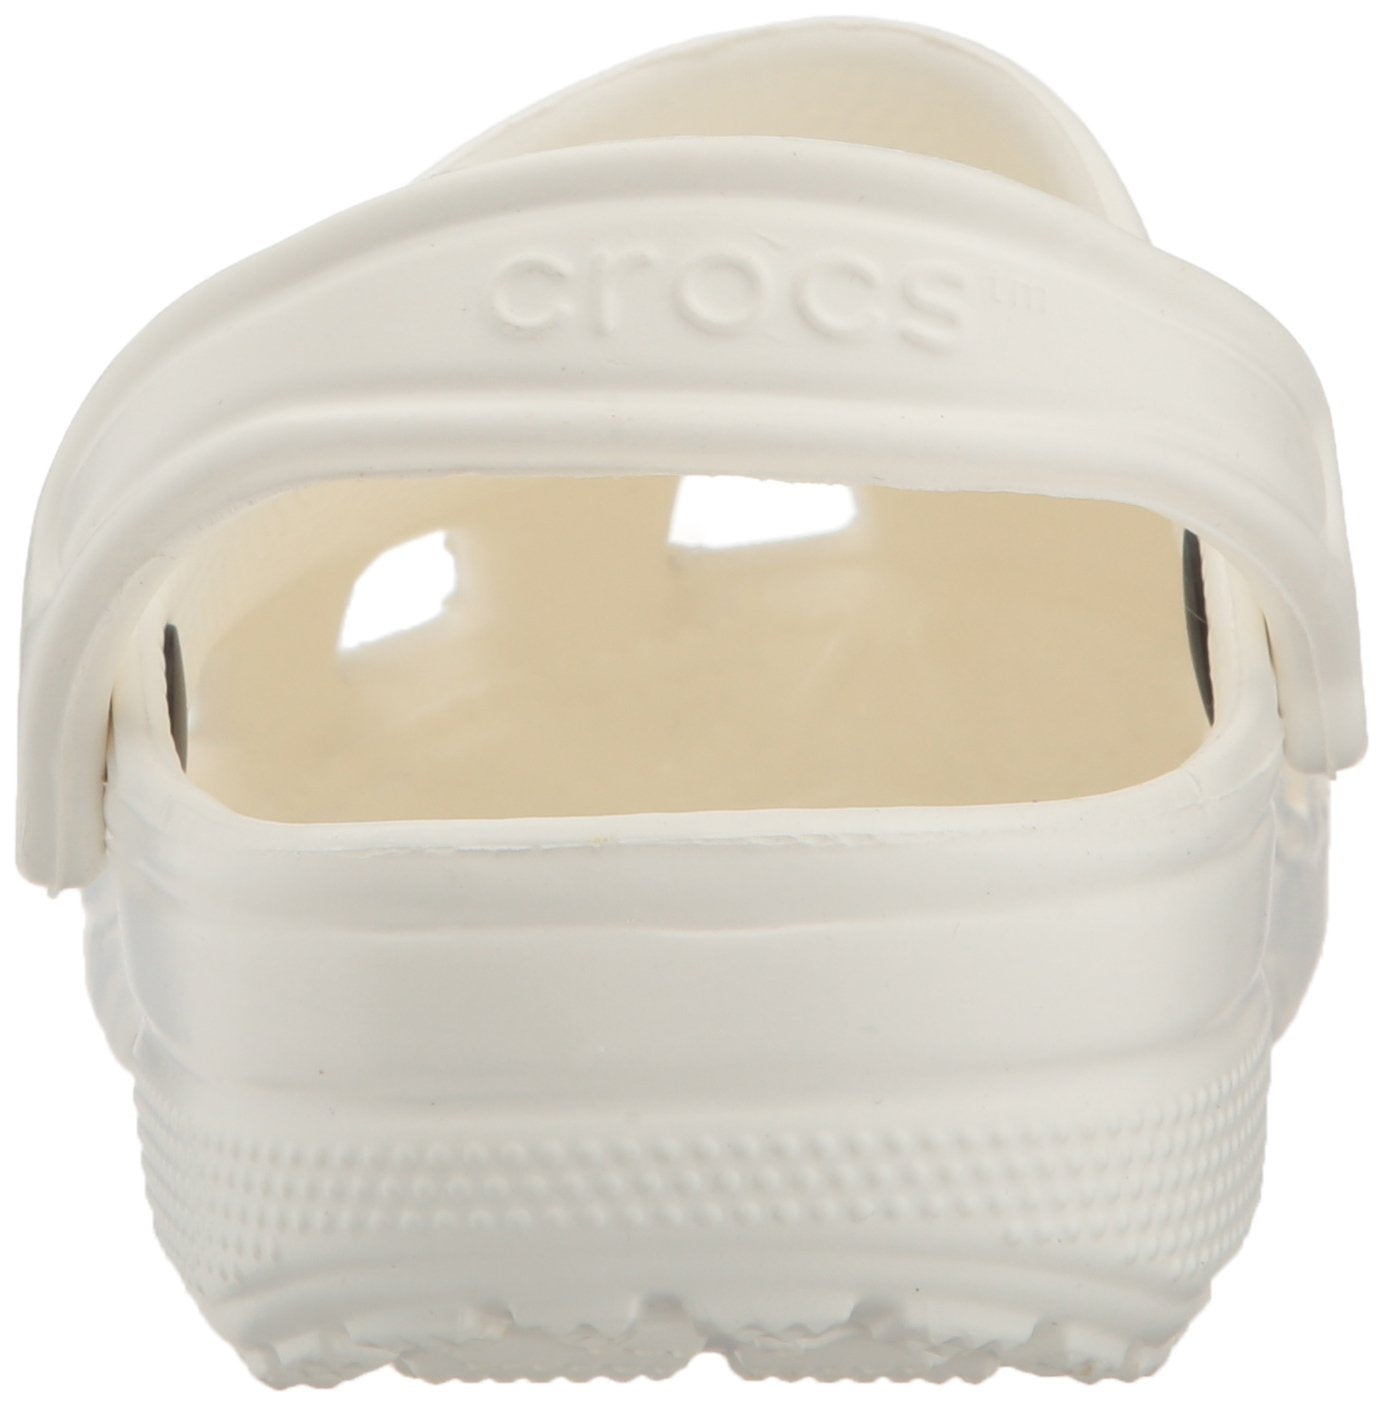 Crocs Classic Clog|Comfortable Slip On Casual Water Shoe - Ctfitnesswear